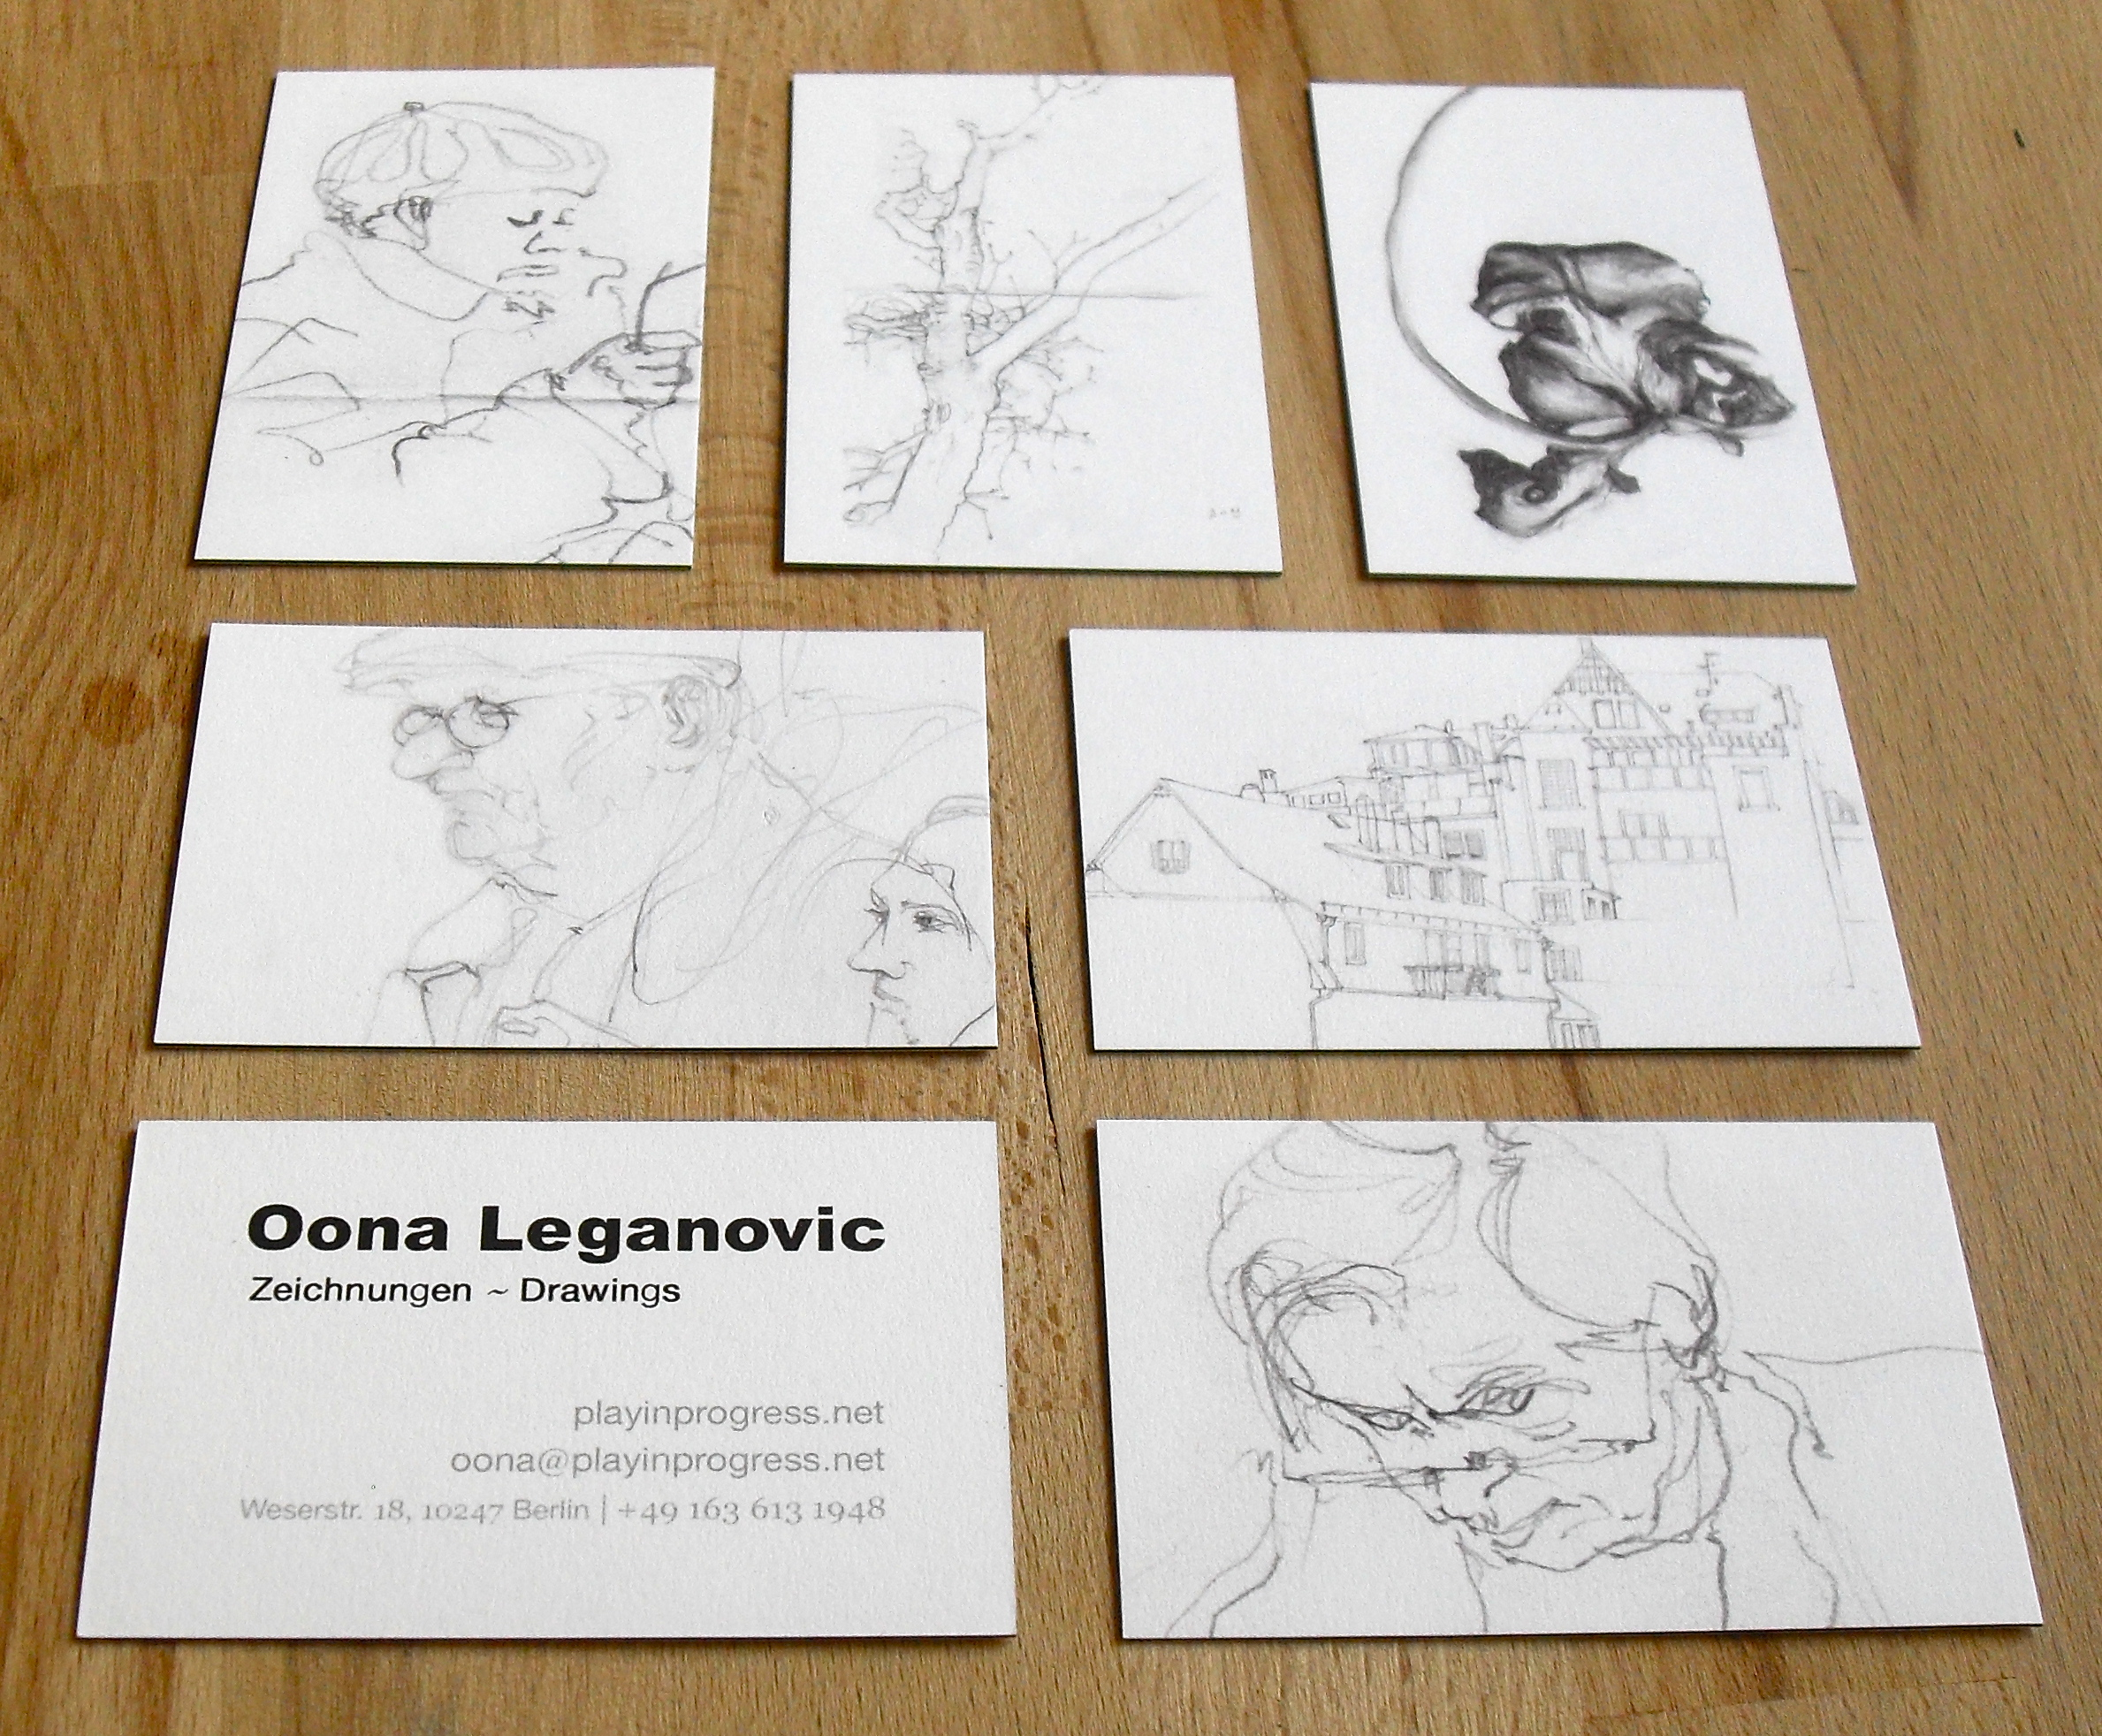 Oona leganovic business cards pencil drawings business cards pencil drawings reheart Image collections